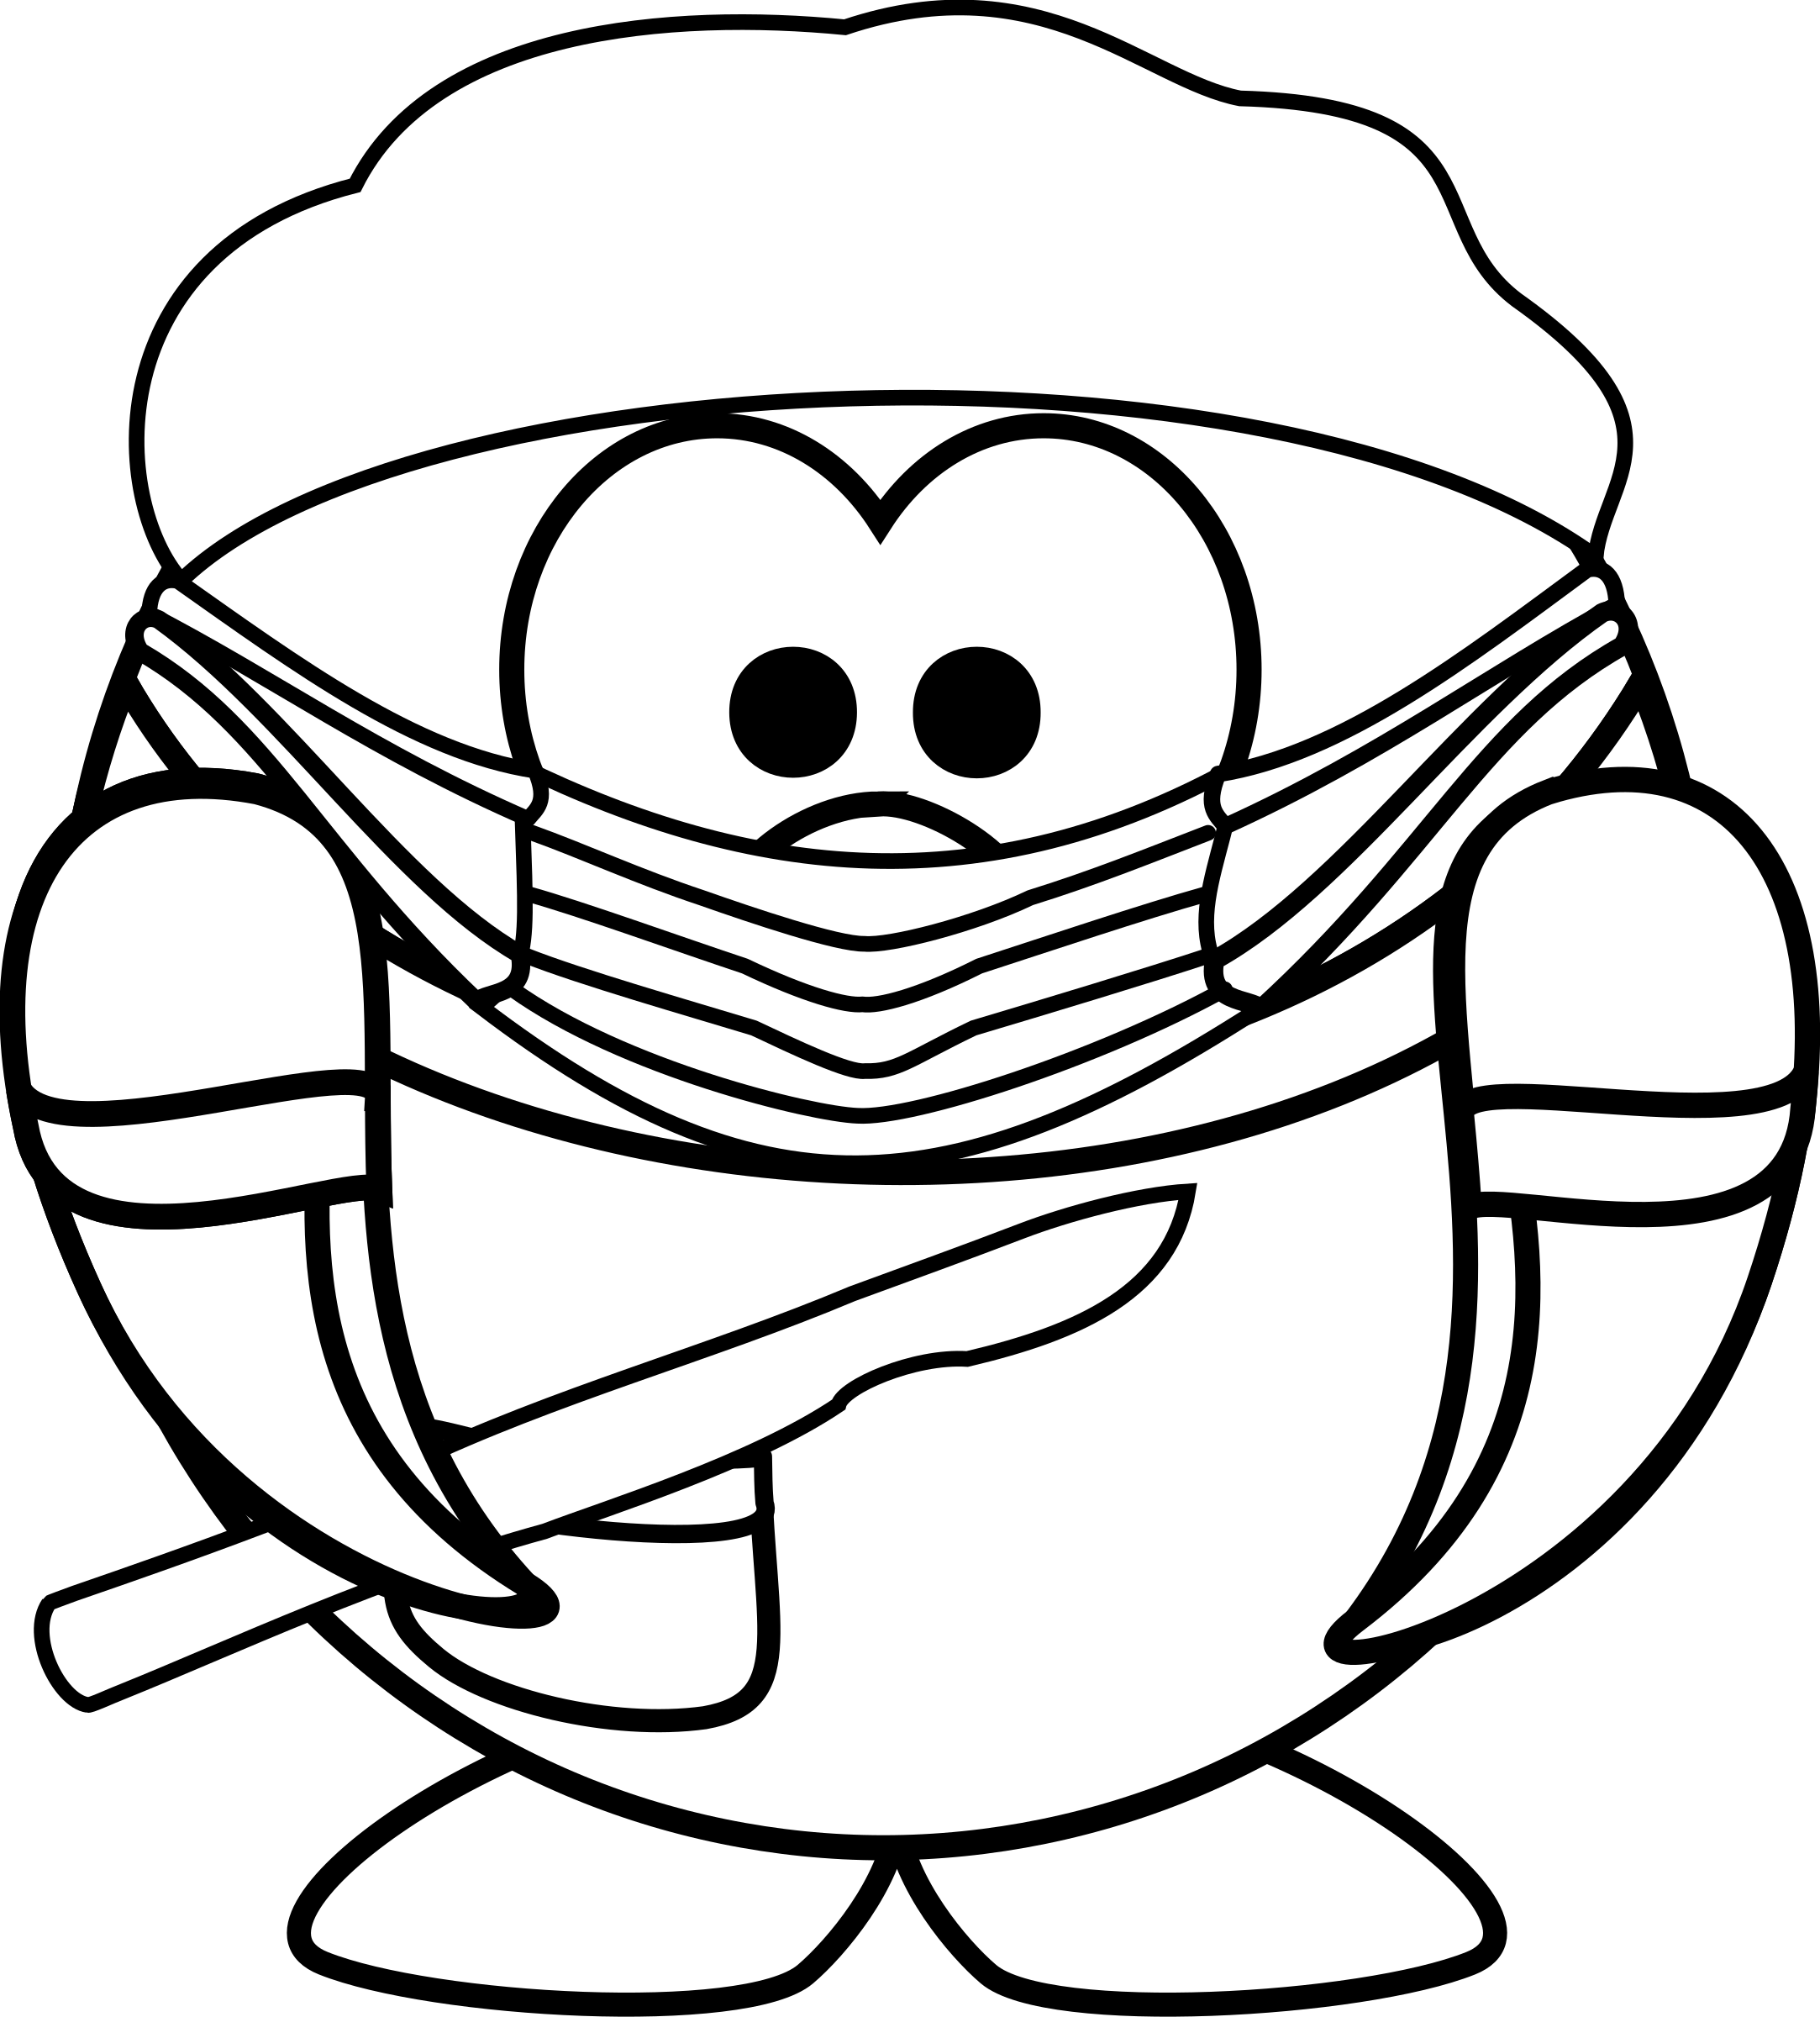 Surgeon drawing black and white. Clipart coloring page of